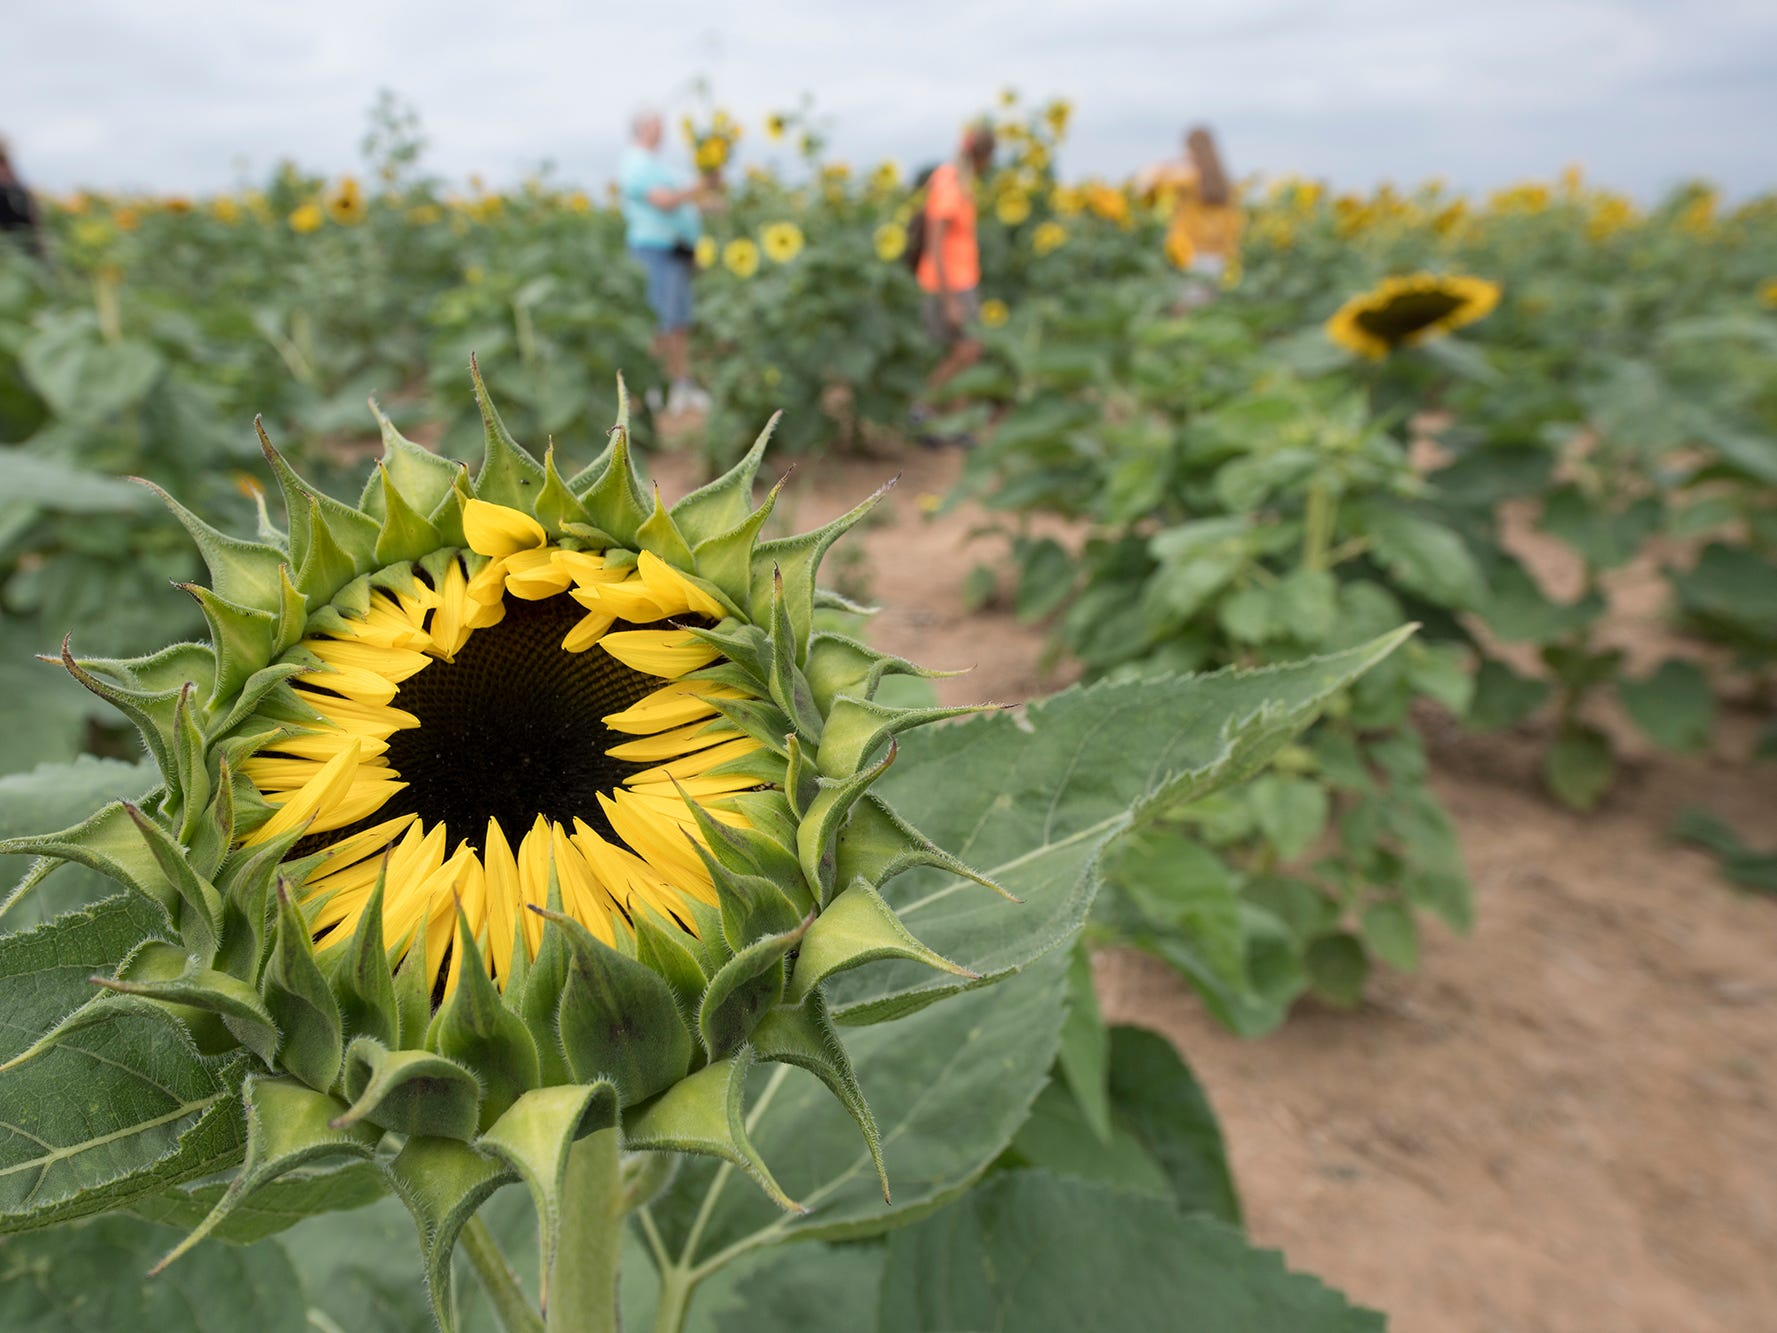 A sunflower opens during the 2nd Annual Sunflower Festival at Maple Lawn Farms near New Park.